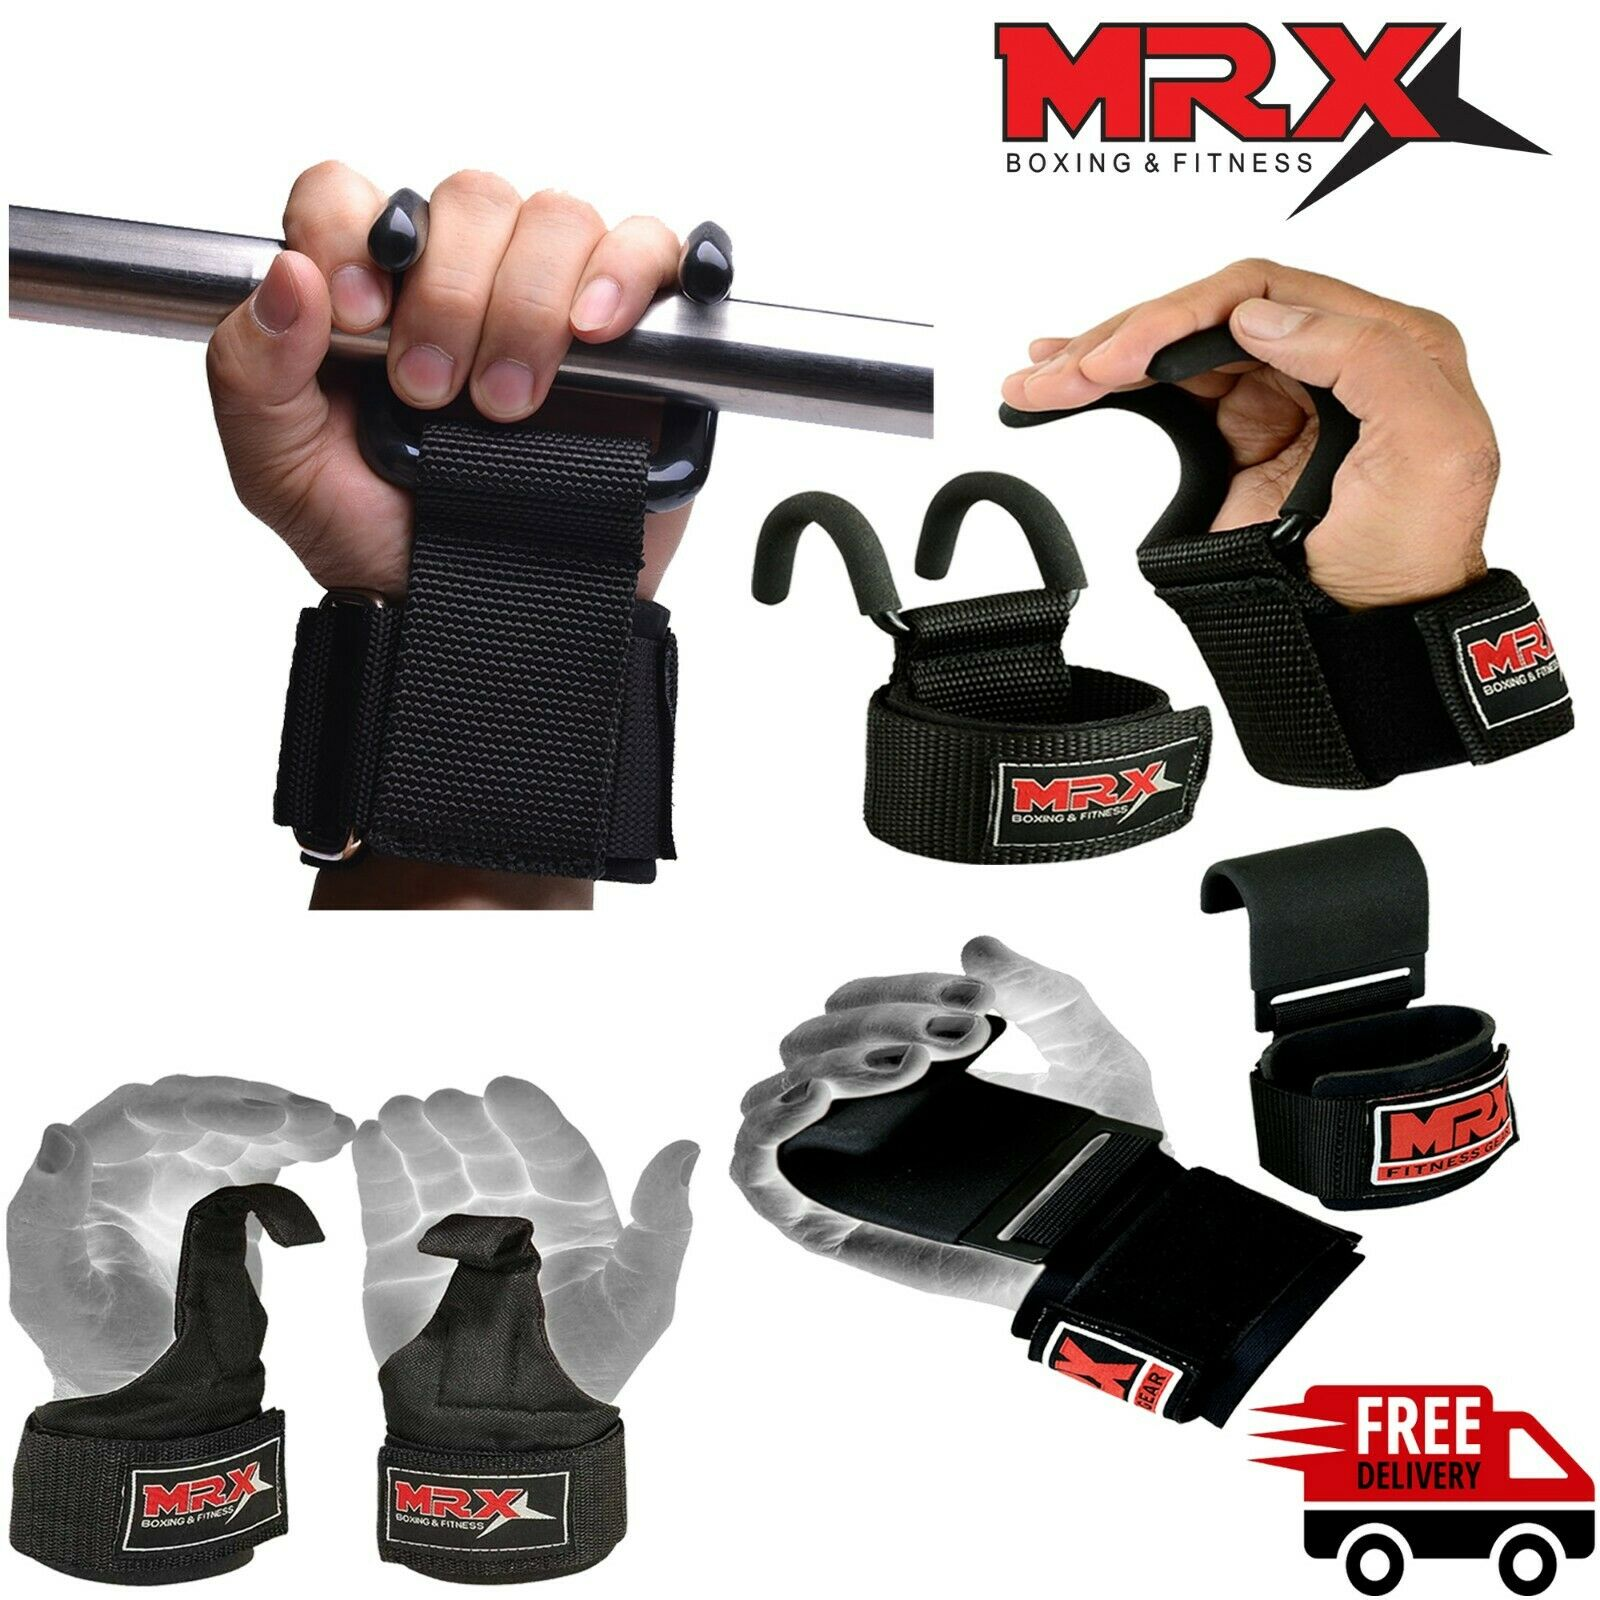 Wrist Wraps Weight Lifting Gym Support Straps Hand Bar Training Workout Deadlift